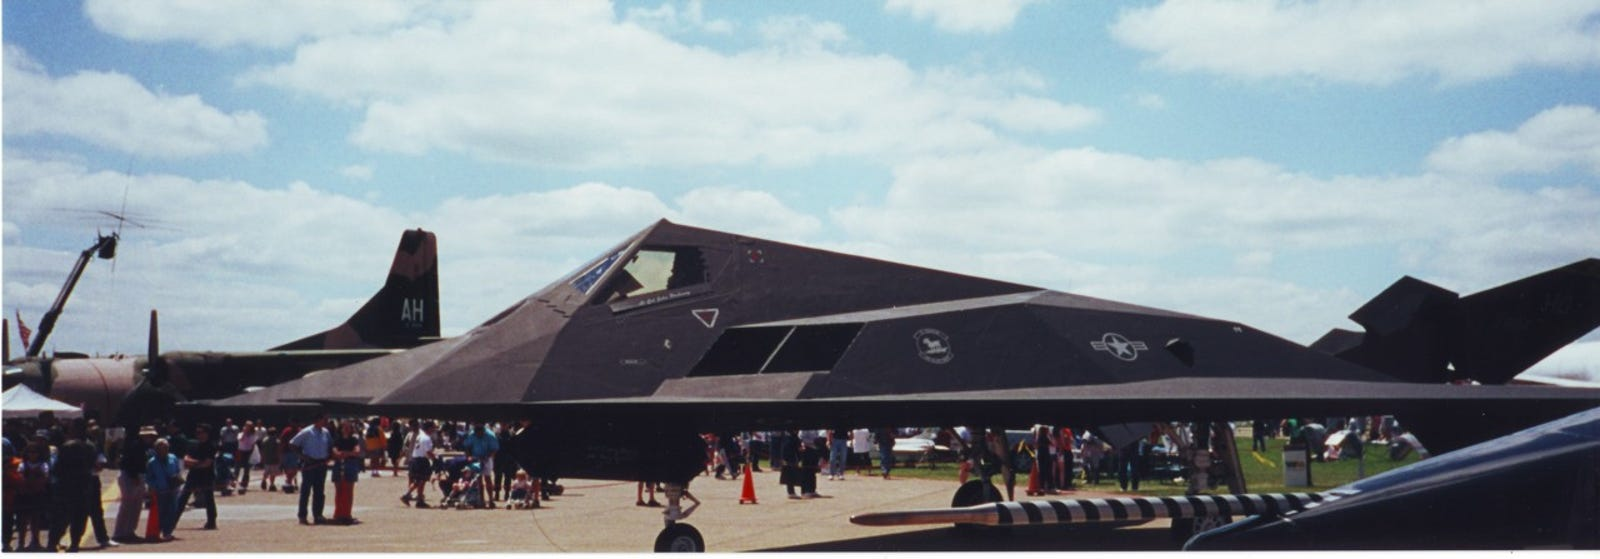 I was quite surprised to see an F-117 at our pokey little airshow.